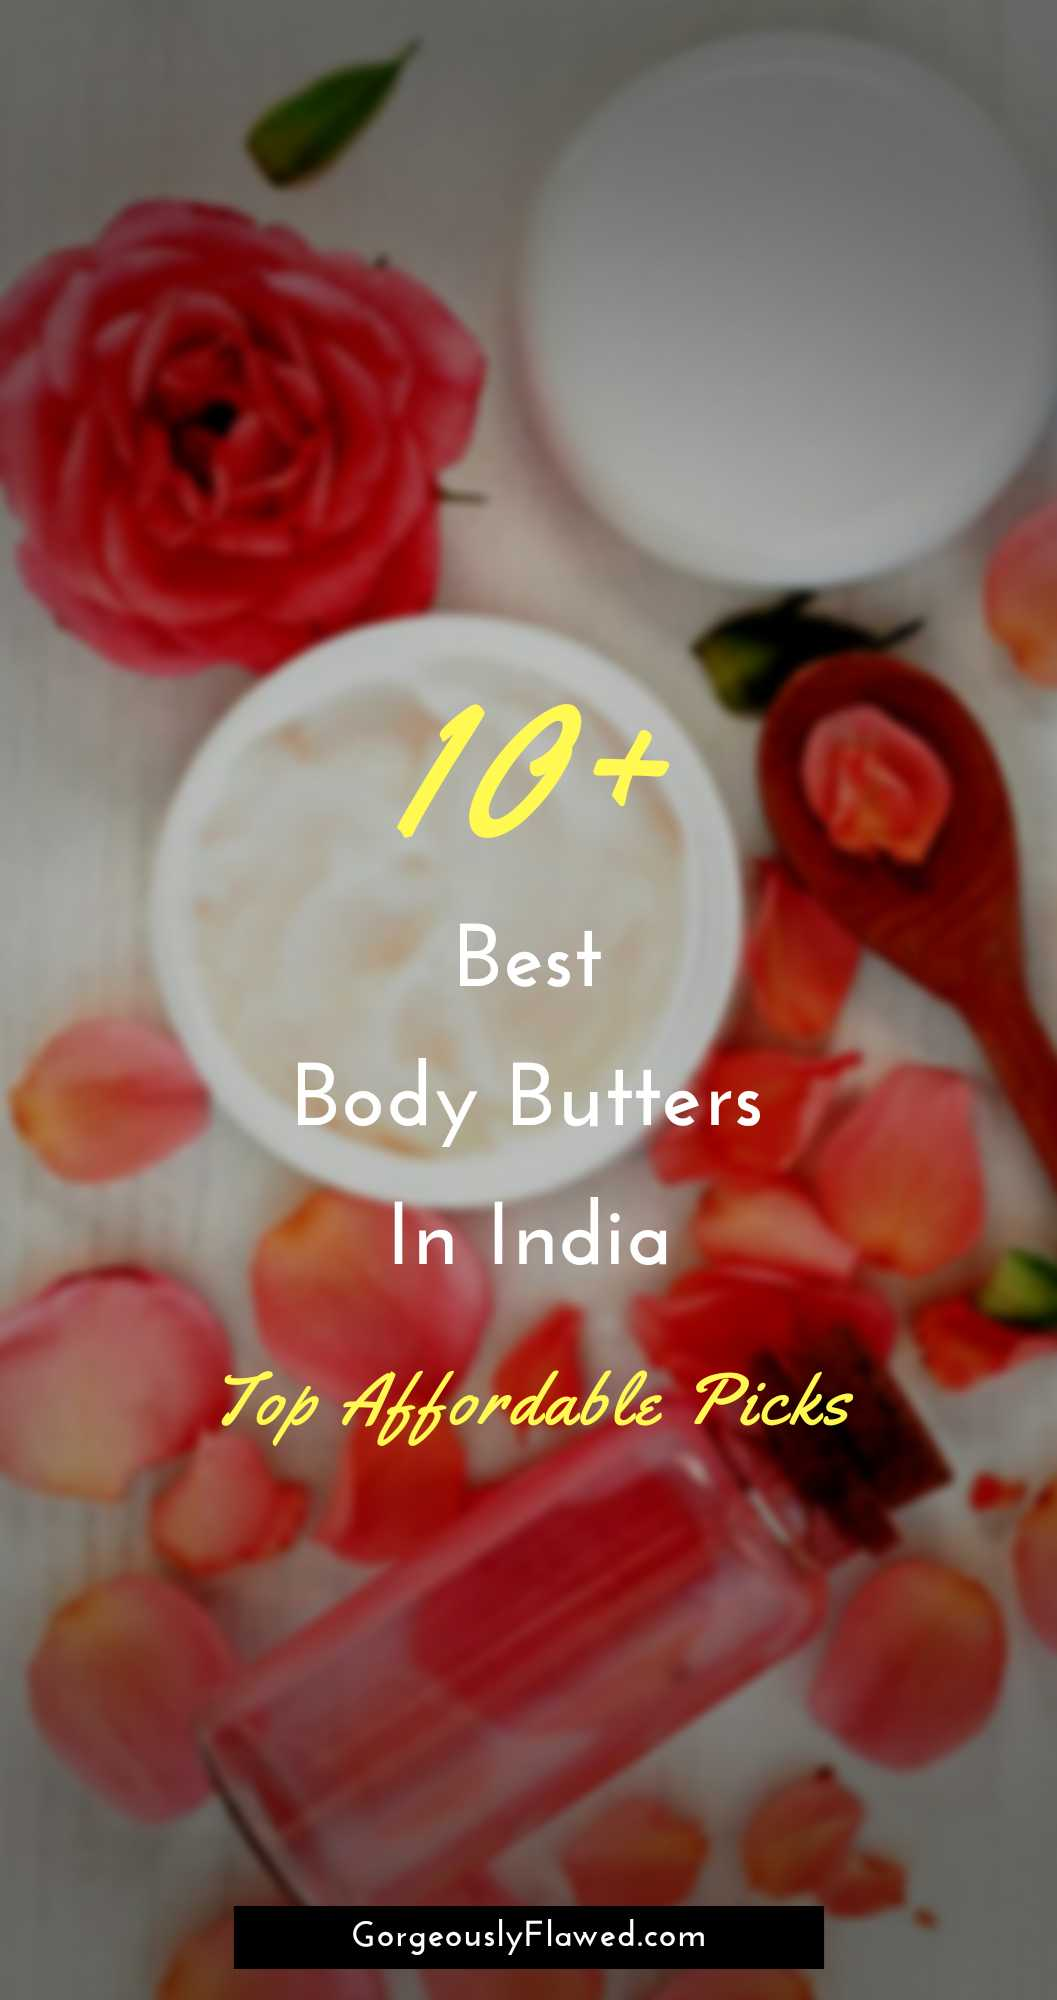 Best Body Butters In India | Top Affordable Picks